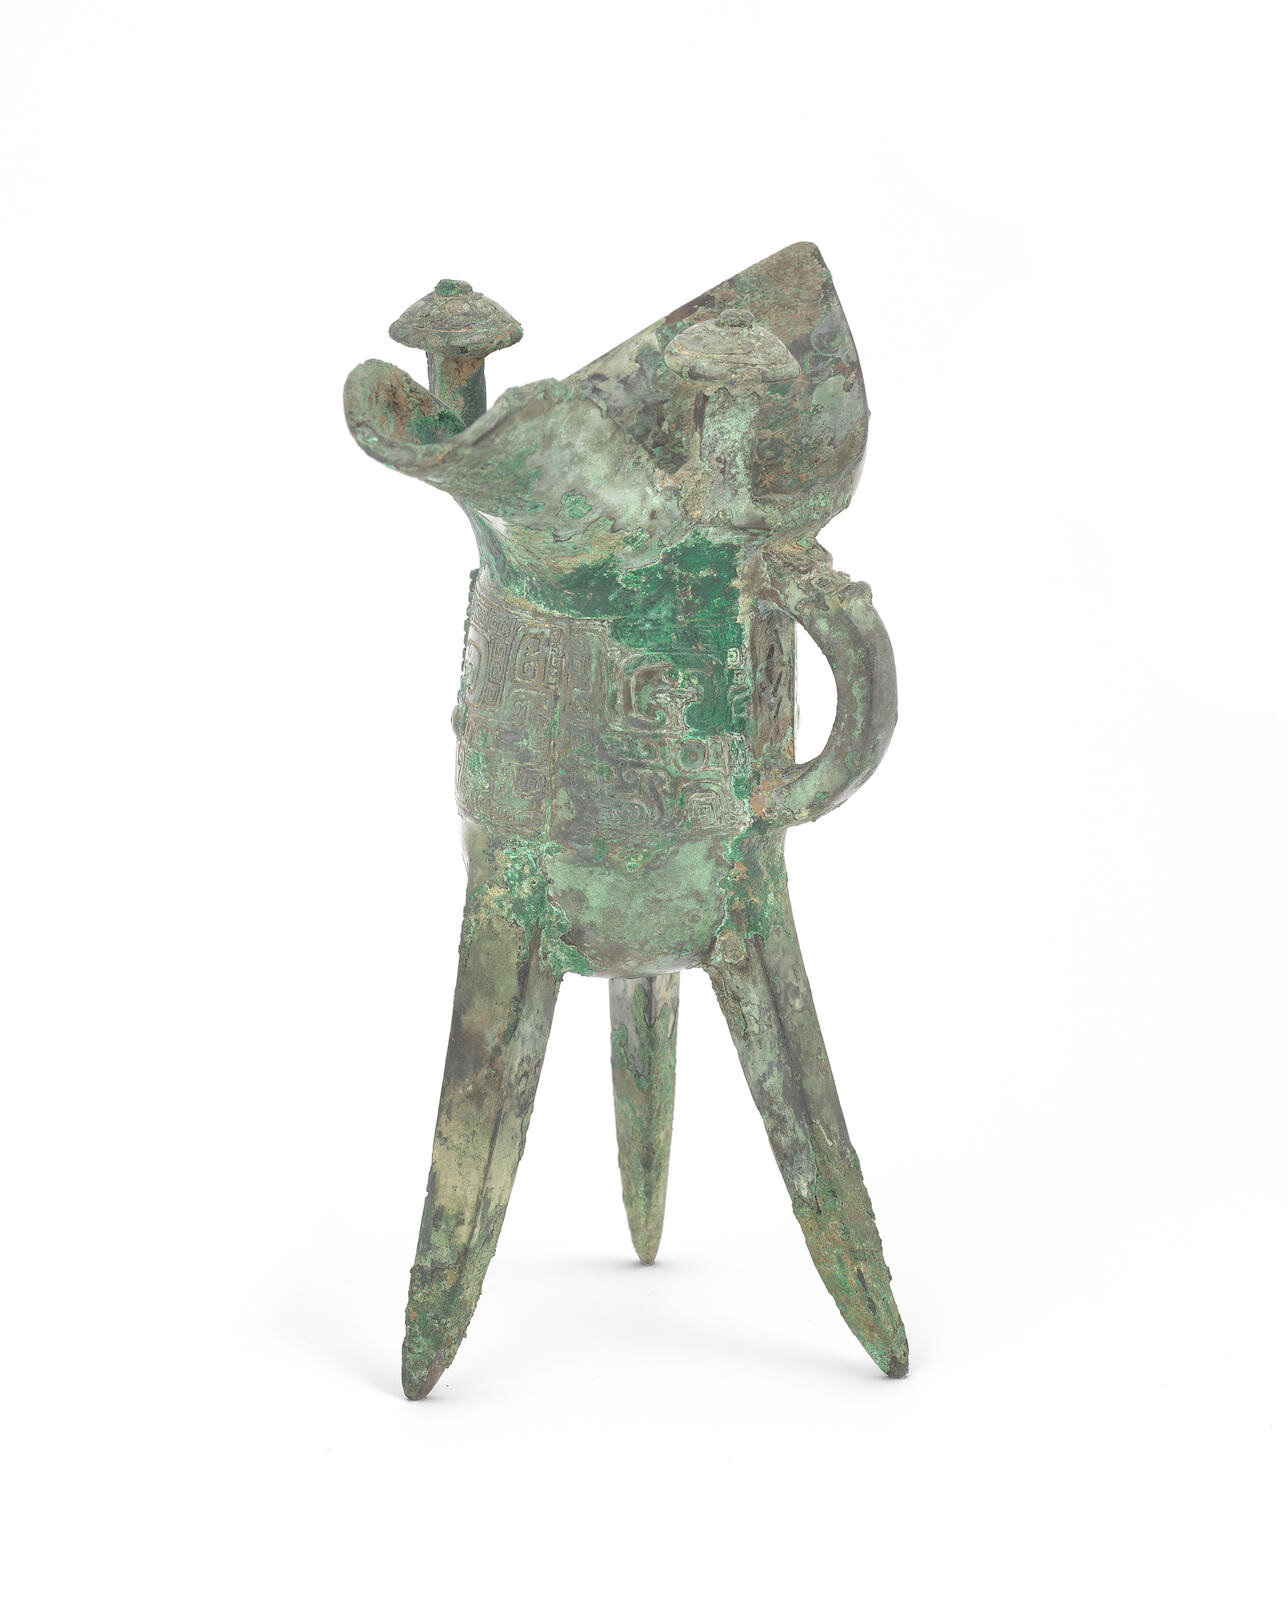 An archaic bronze ritual wine vessel, Jue, Shang Dynasty (circa 1600-1046 BCE)